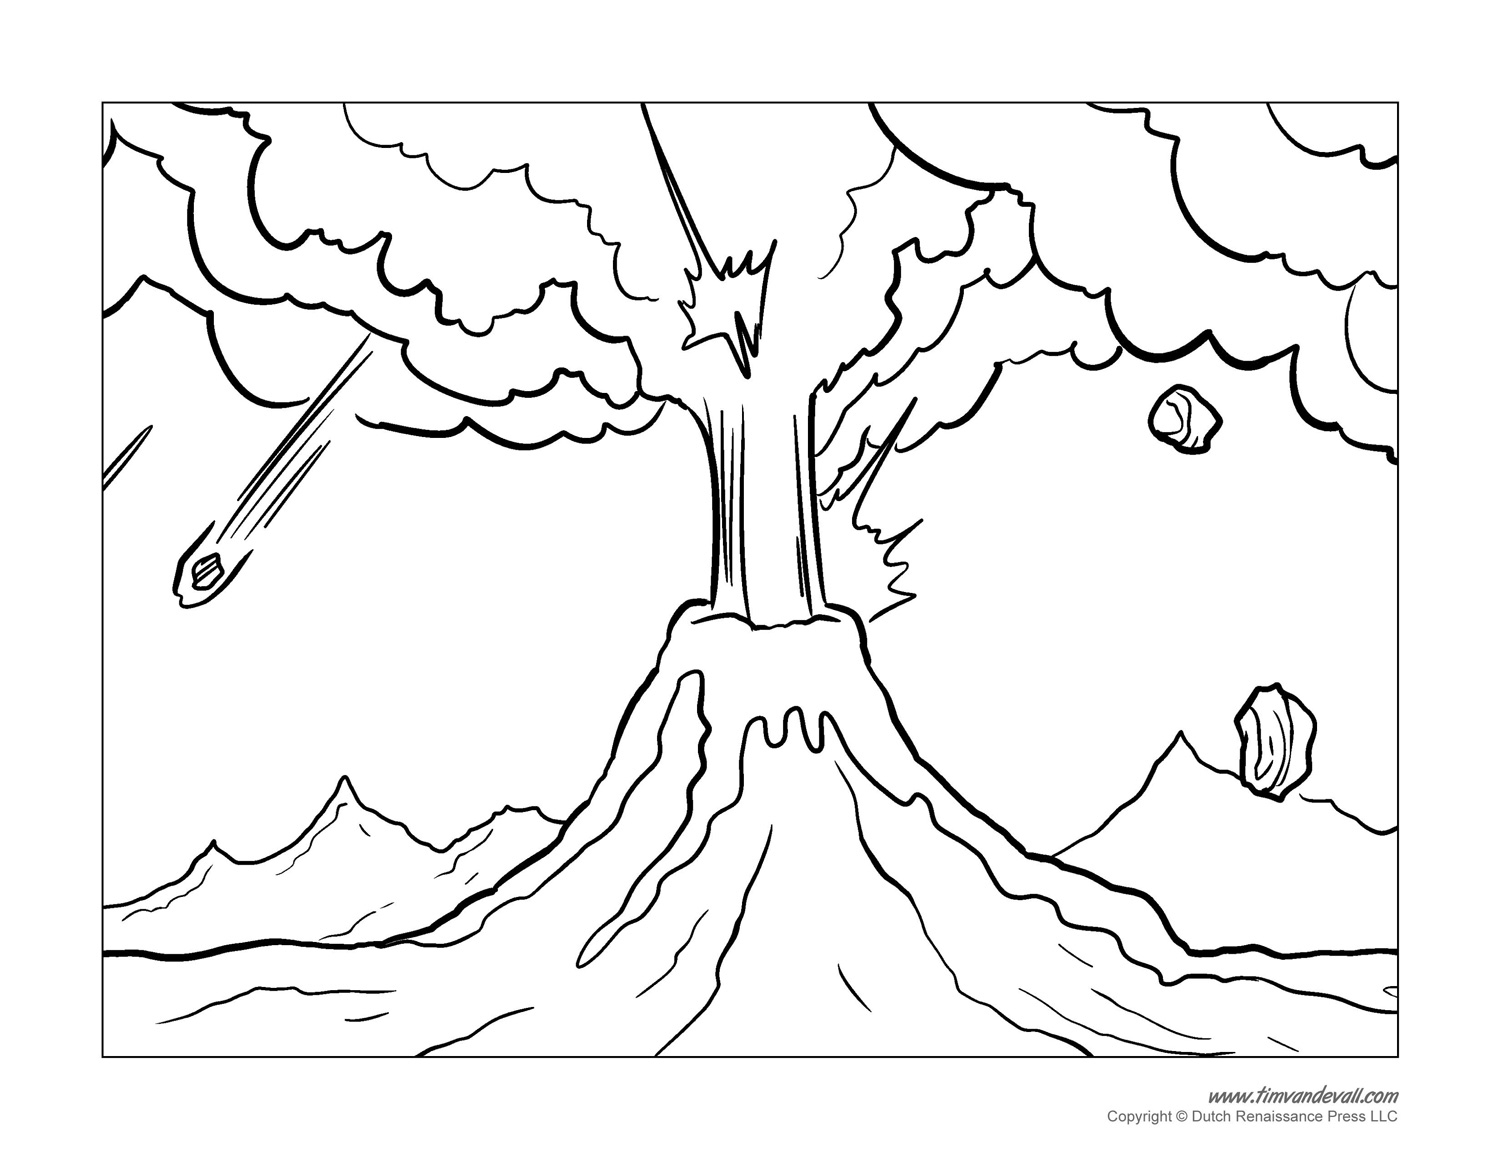 Volcano Coloring Pages - Volcanoes Erupting Free Coloring Pages